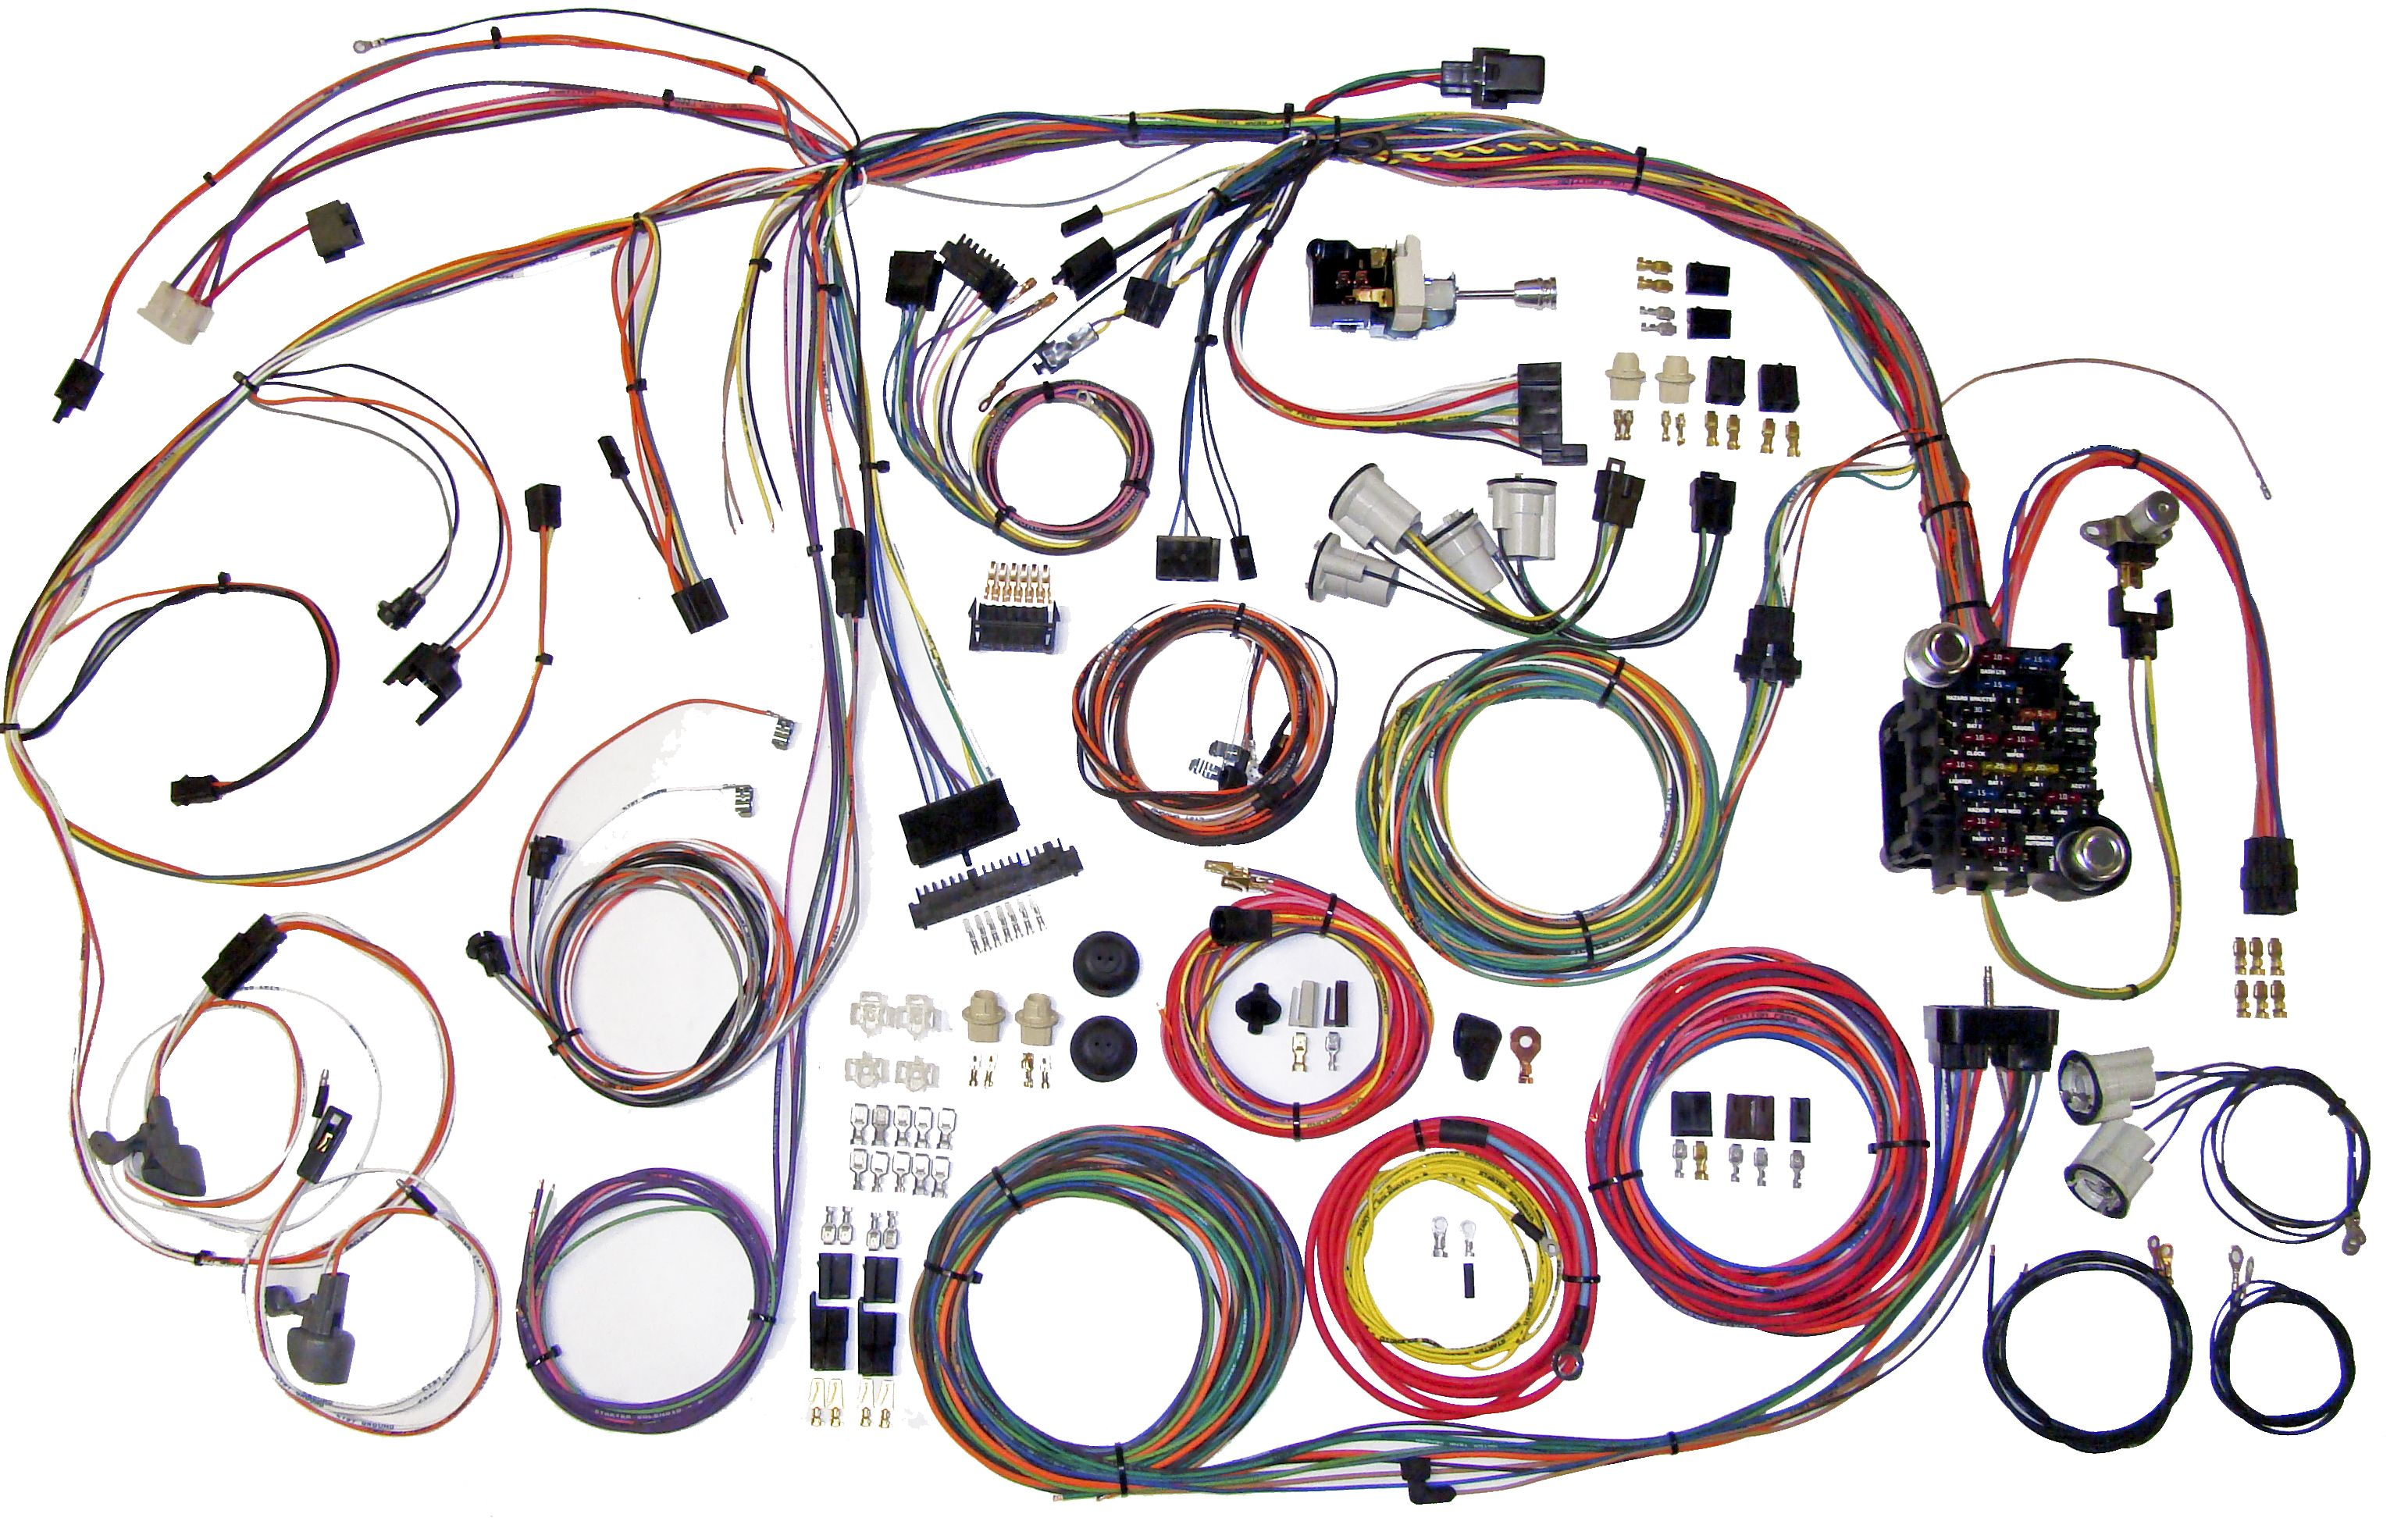 1971 chevelle wiring harness classic update kit 1970 72 chevy chevelle american autowire  1970 72 chevy chevelle